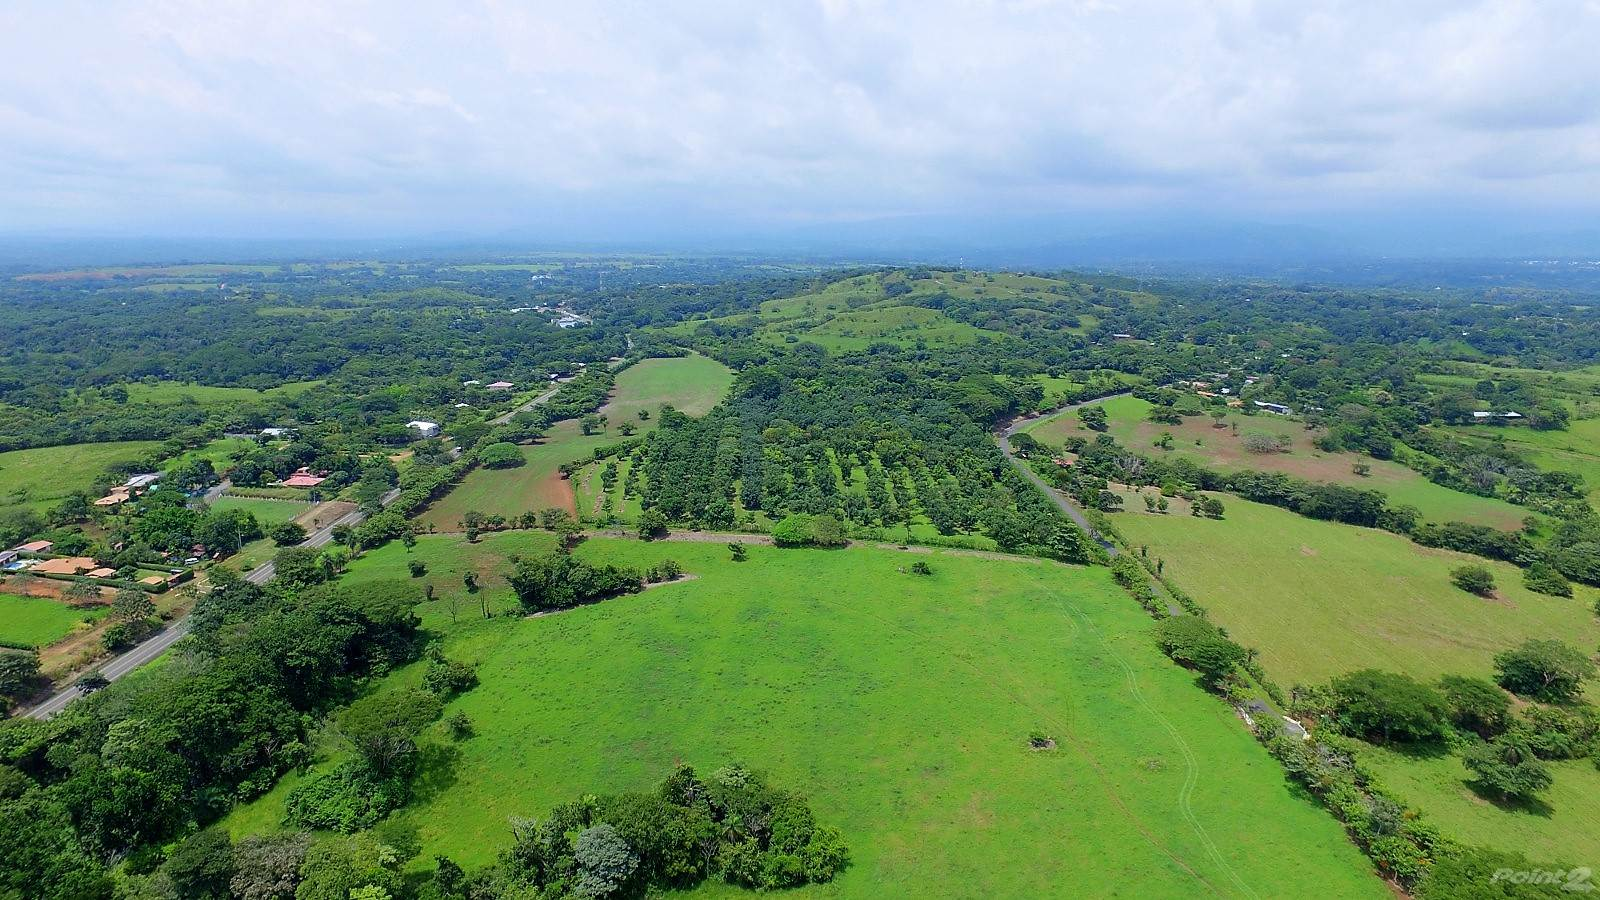 農場 売買物件 建ての RA1893 Land Investment close to future Int'l airport Orotina @ only 30min drive from Jaco, Orotina Coyolar, Alajuela ,23001  , コスタリカ